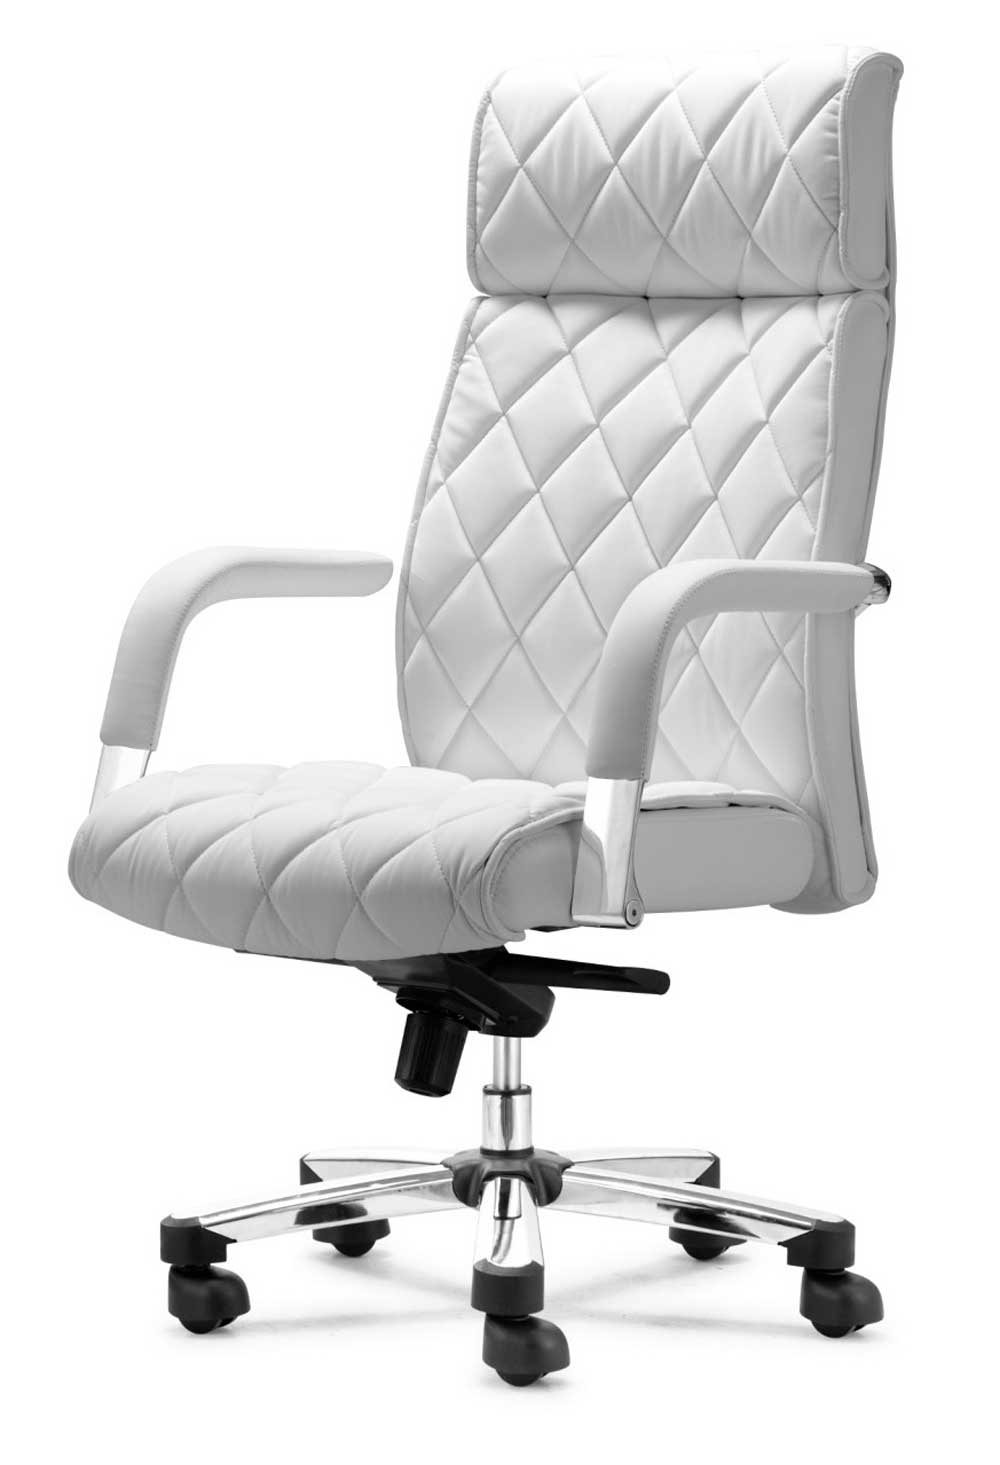 Best And Newest Chairs : Home Office Furniture Office Chairs Online Ergonomic Desk Pertaining To Ergonomic Executive Office Chairs (View 3 of 20)